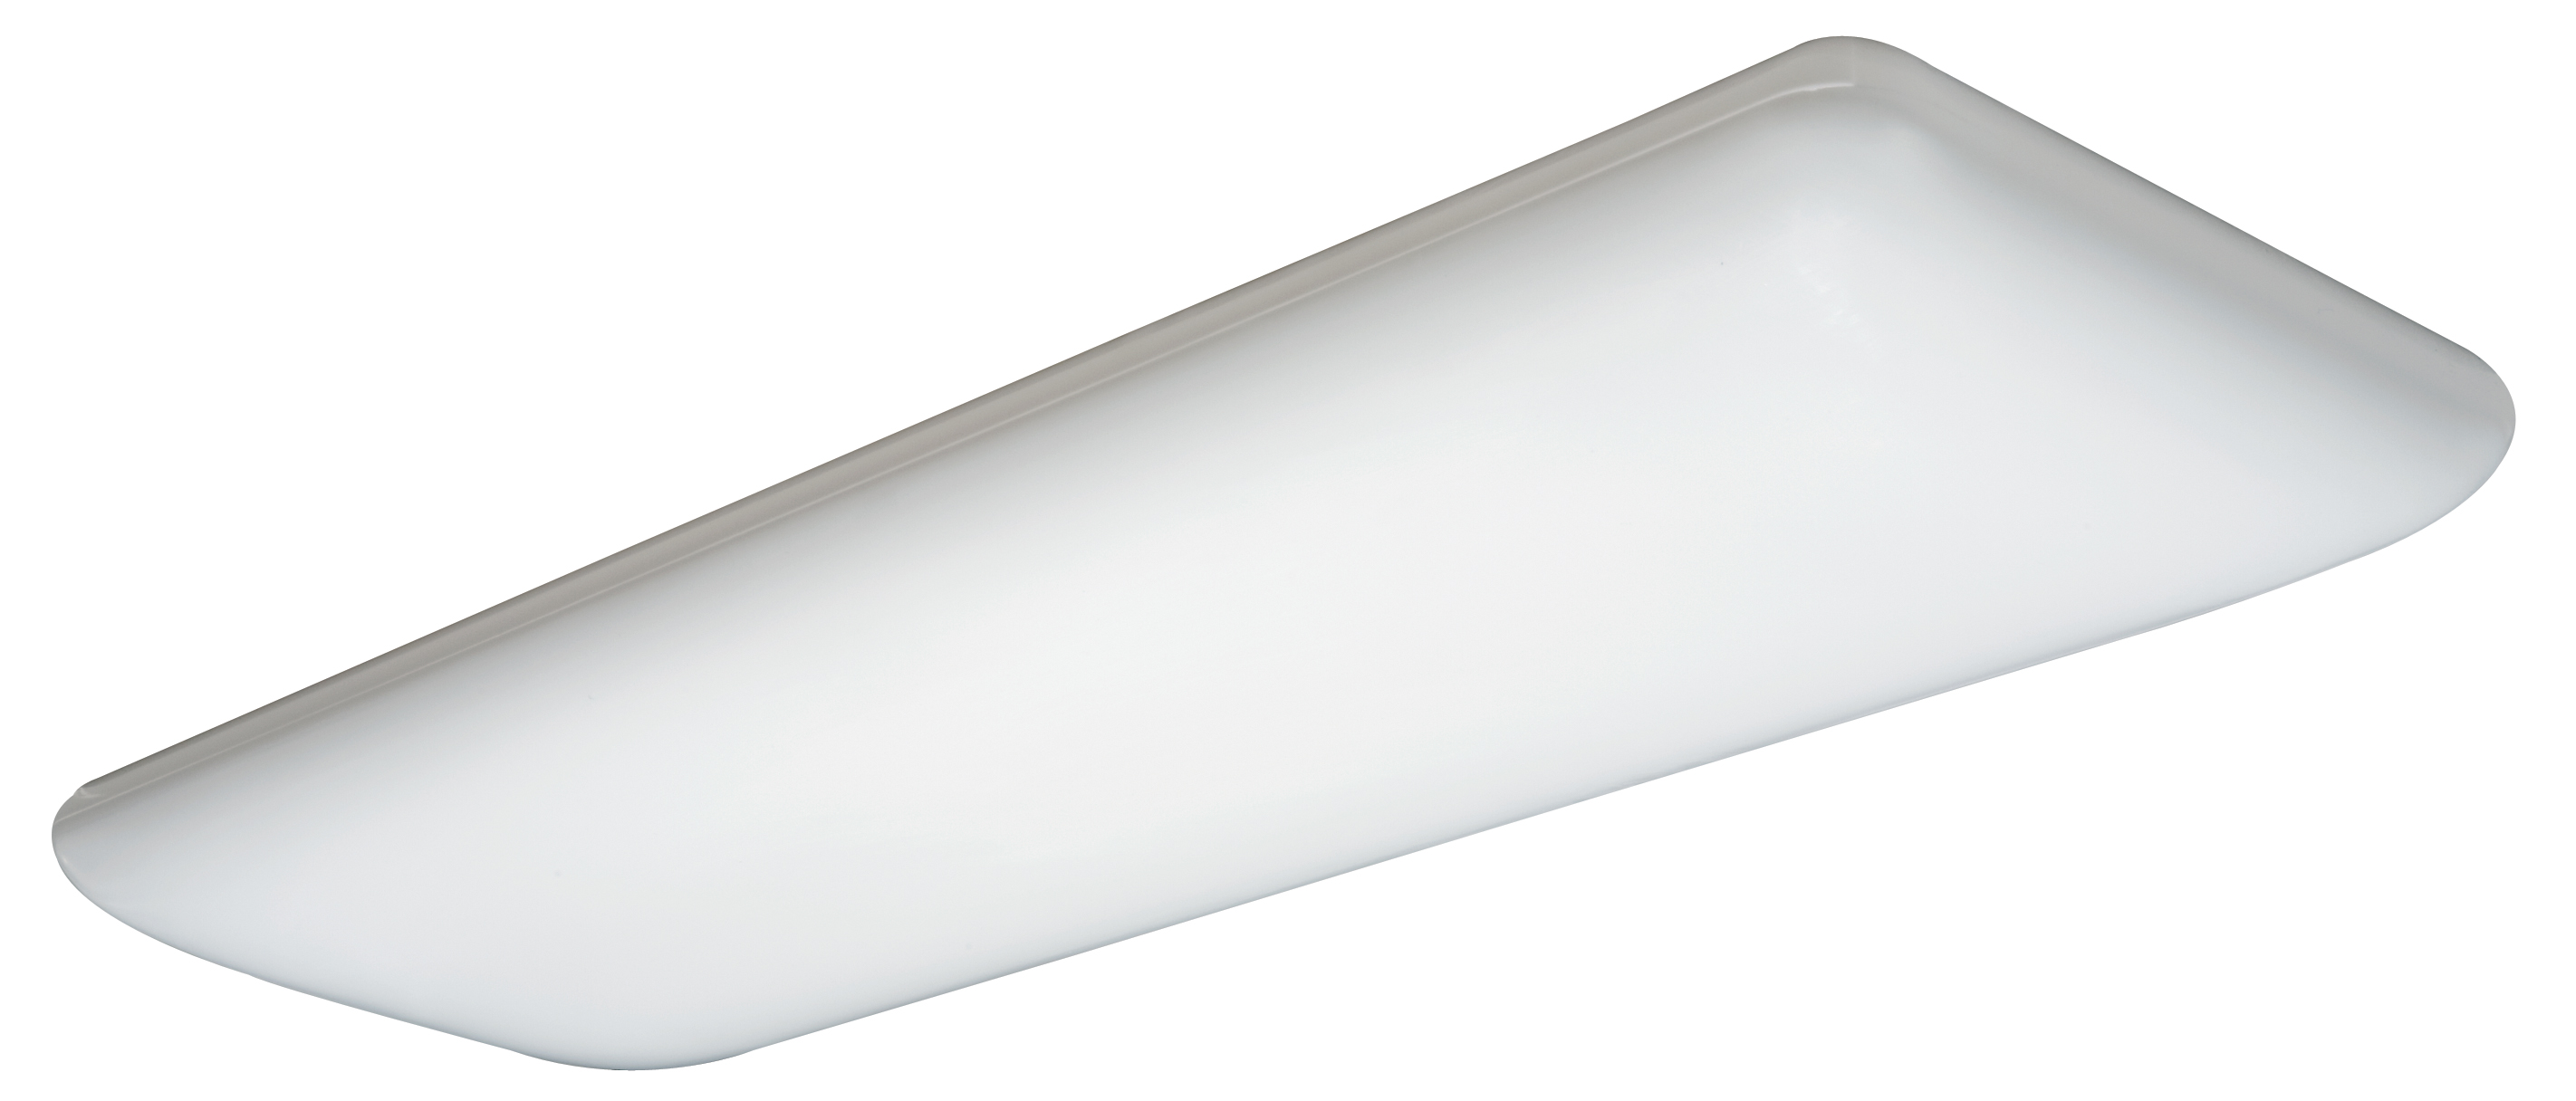 Lithonia Lighting® 10642RE